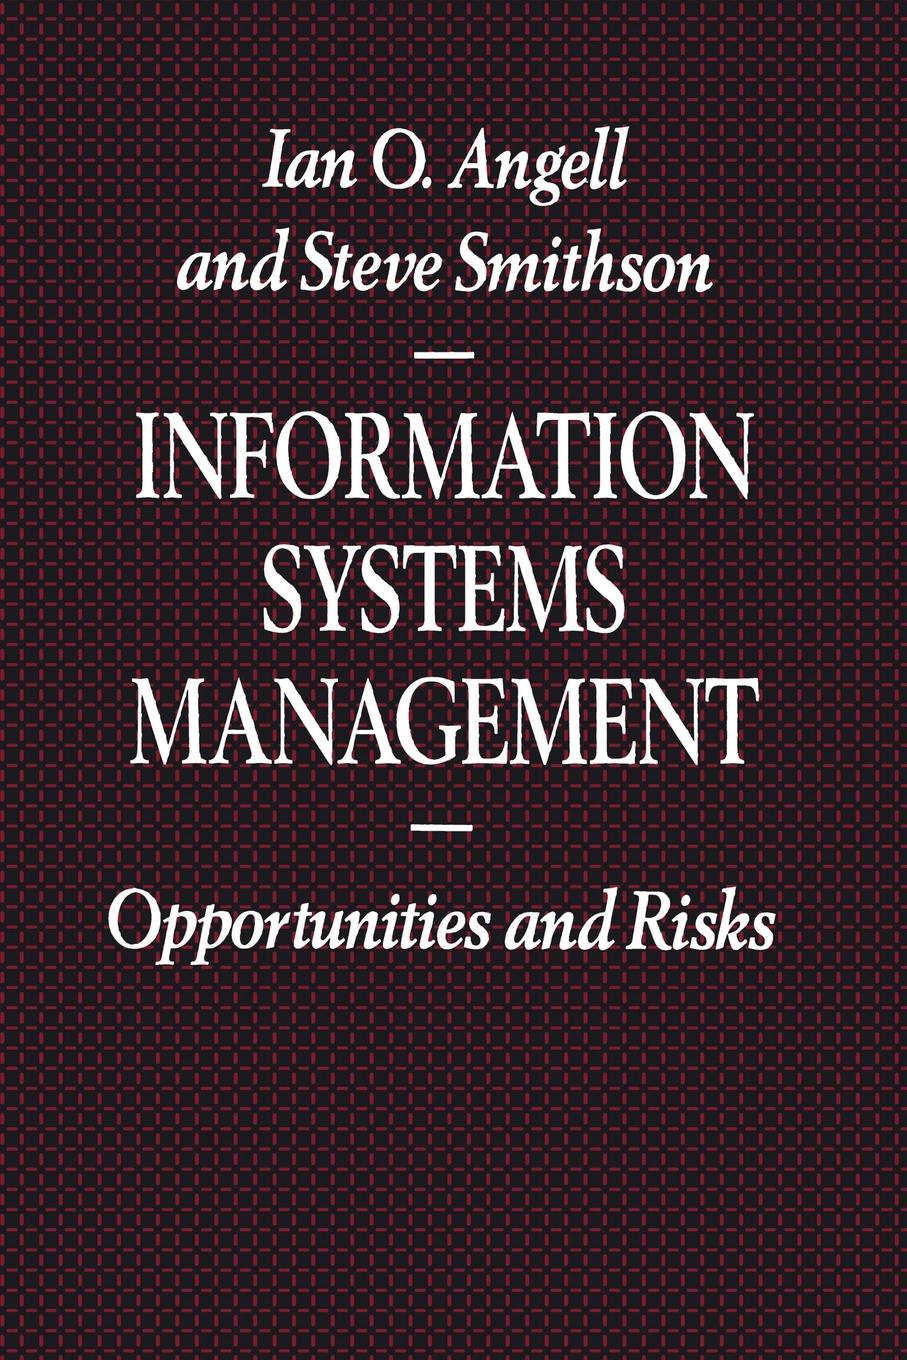 лучшая цена Ian O. Angell, Steve Smithson Information Systems Management. Opportunities and Risks